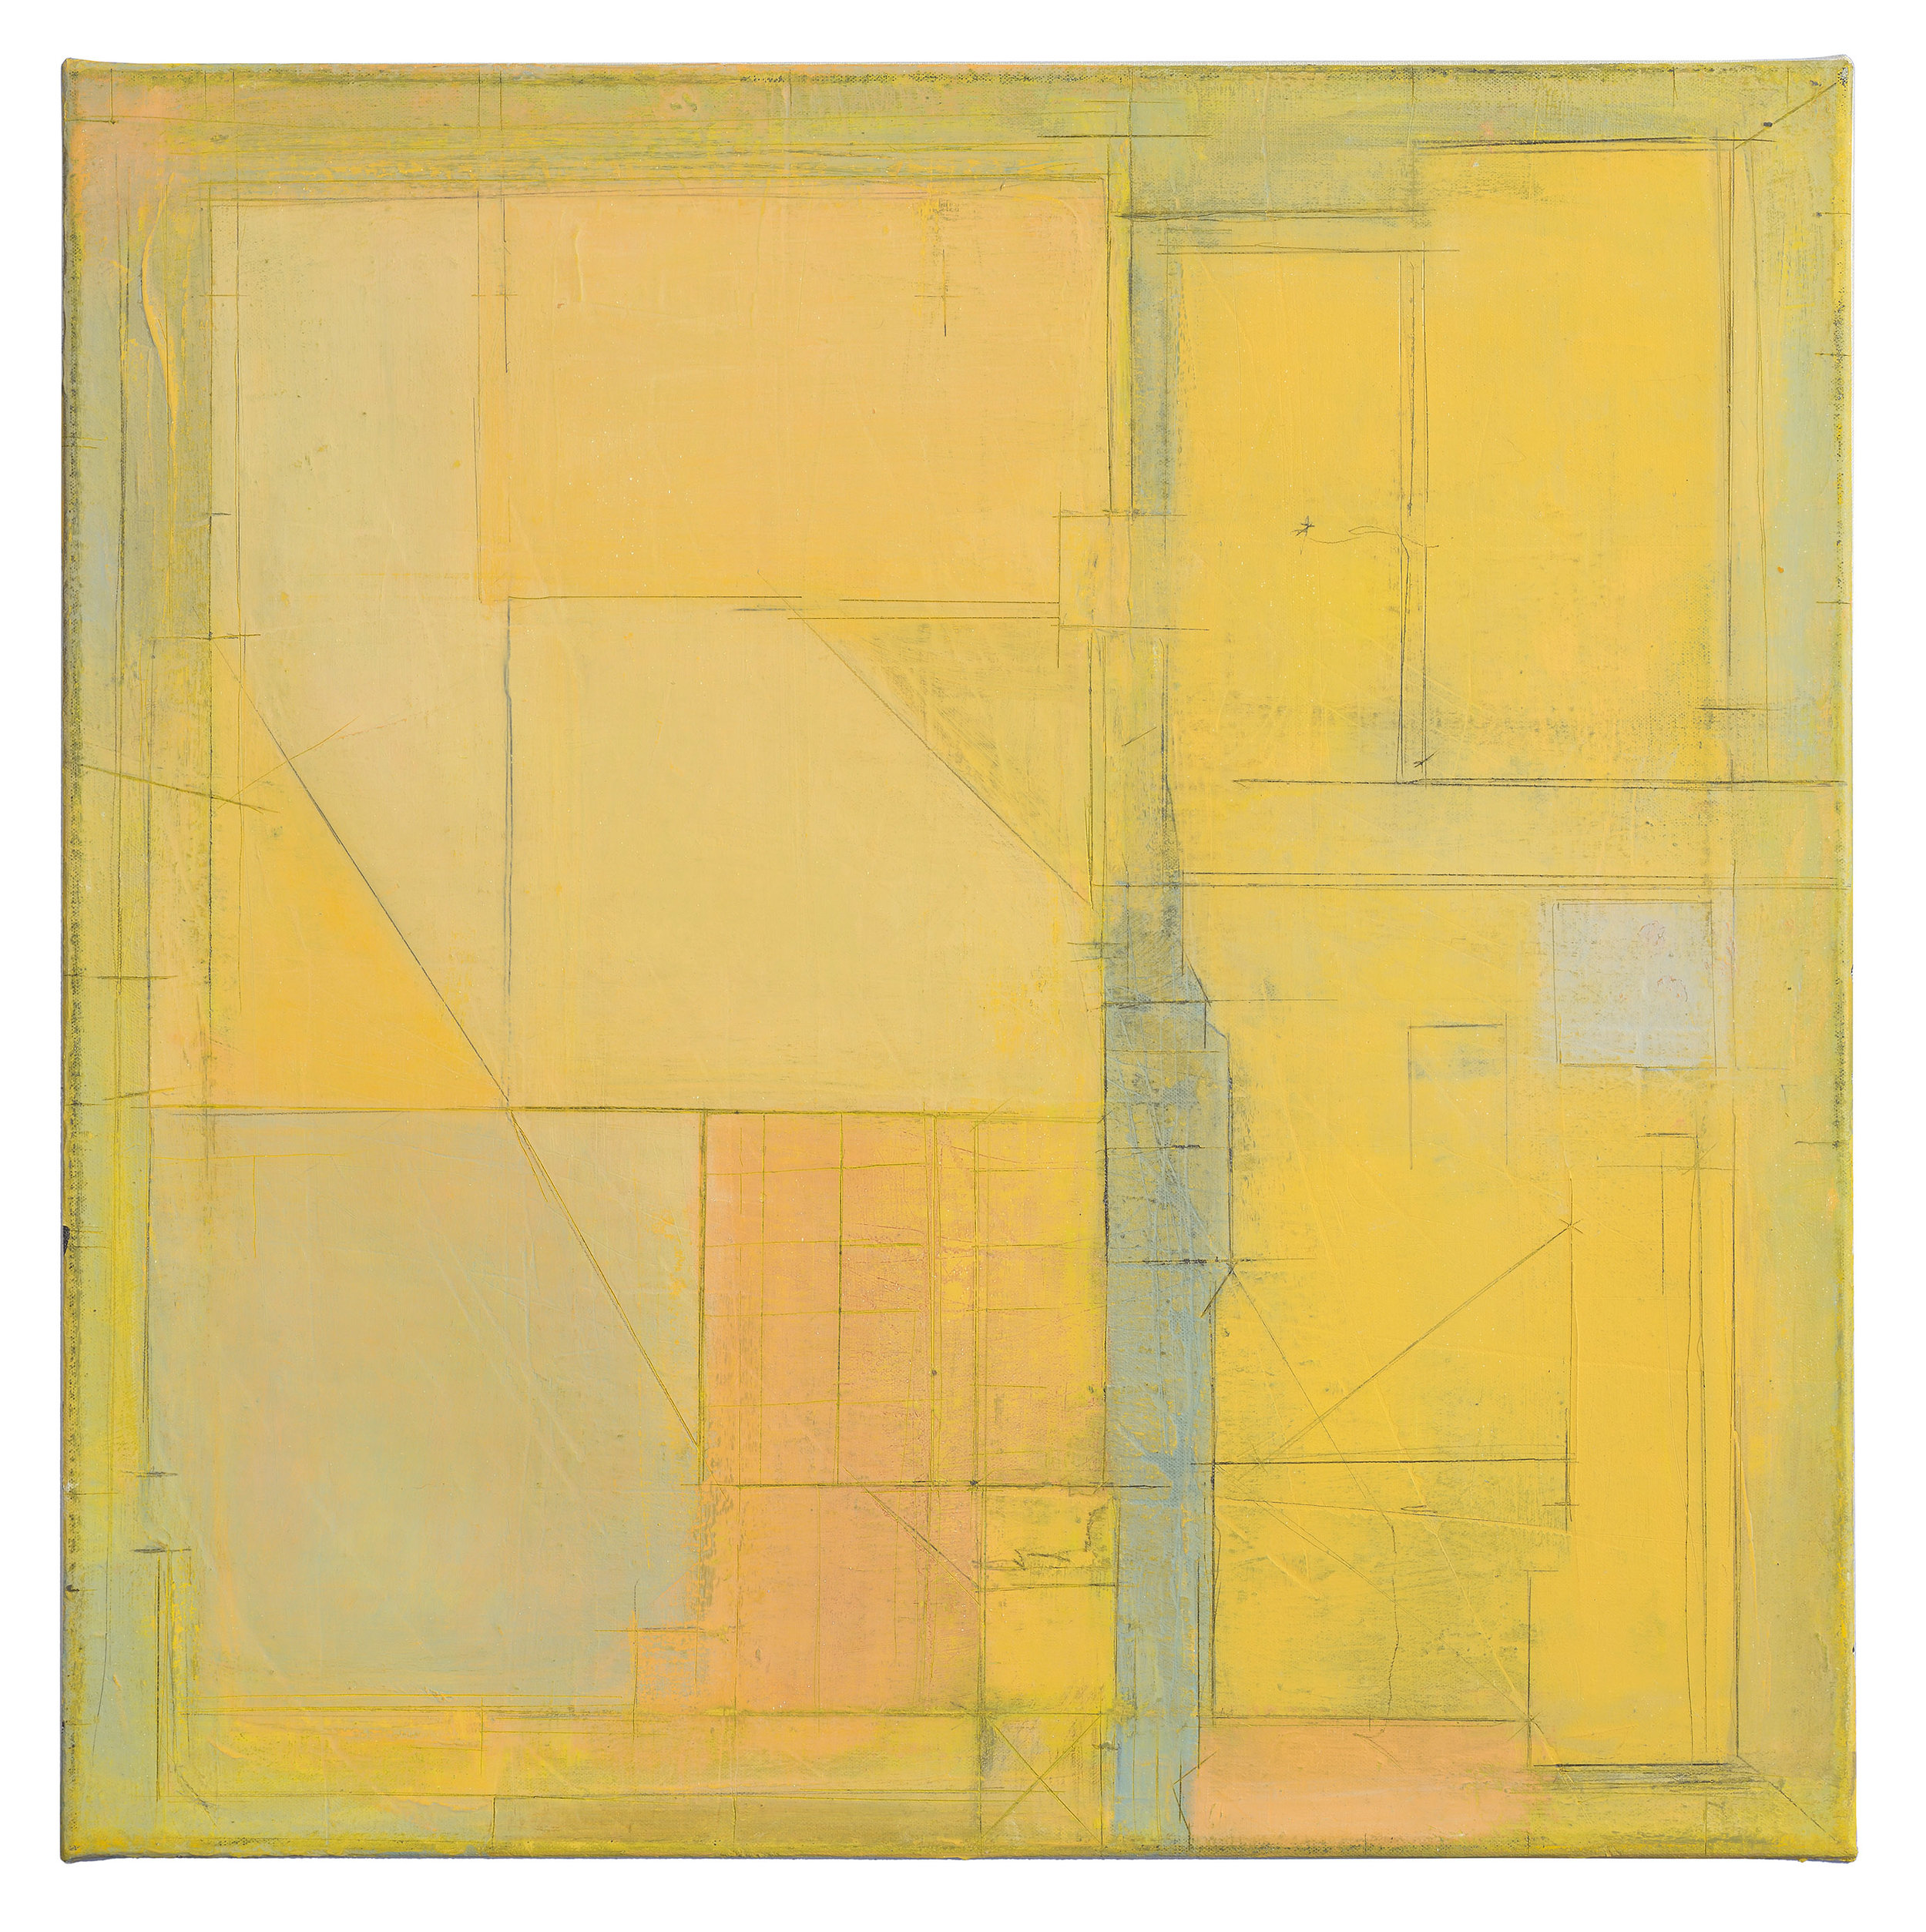 Waiting Rooms Yellow_oil, wax _ graphite on canvas_50x50cm.jpg